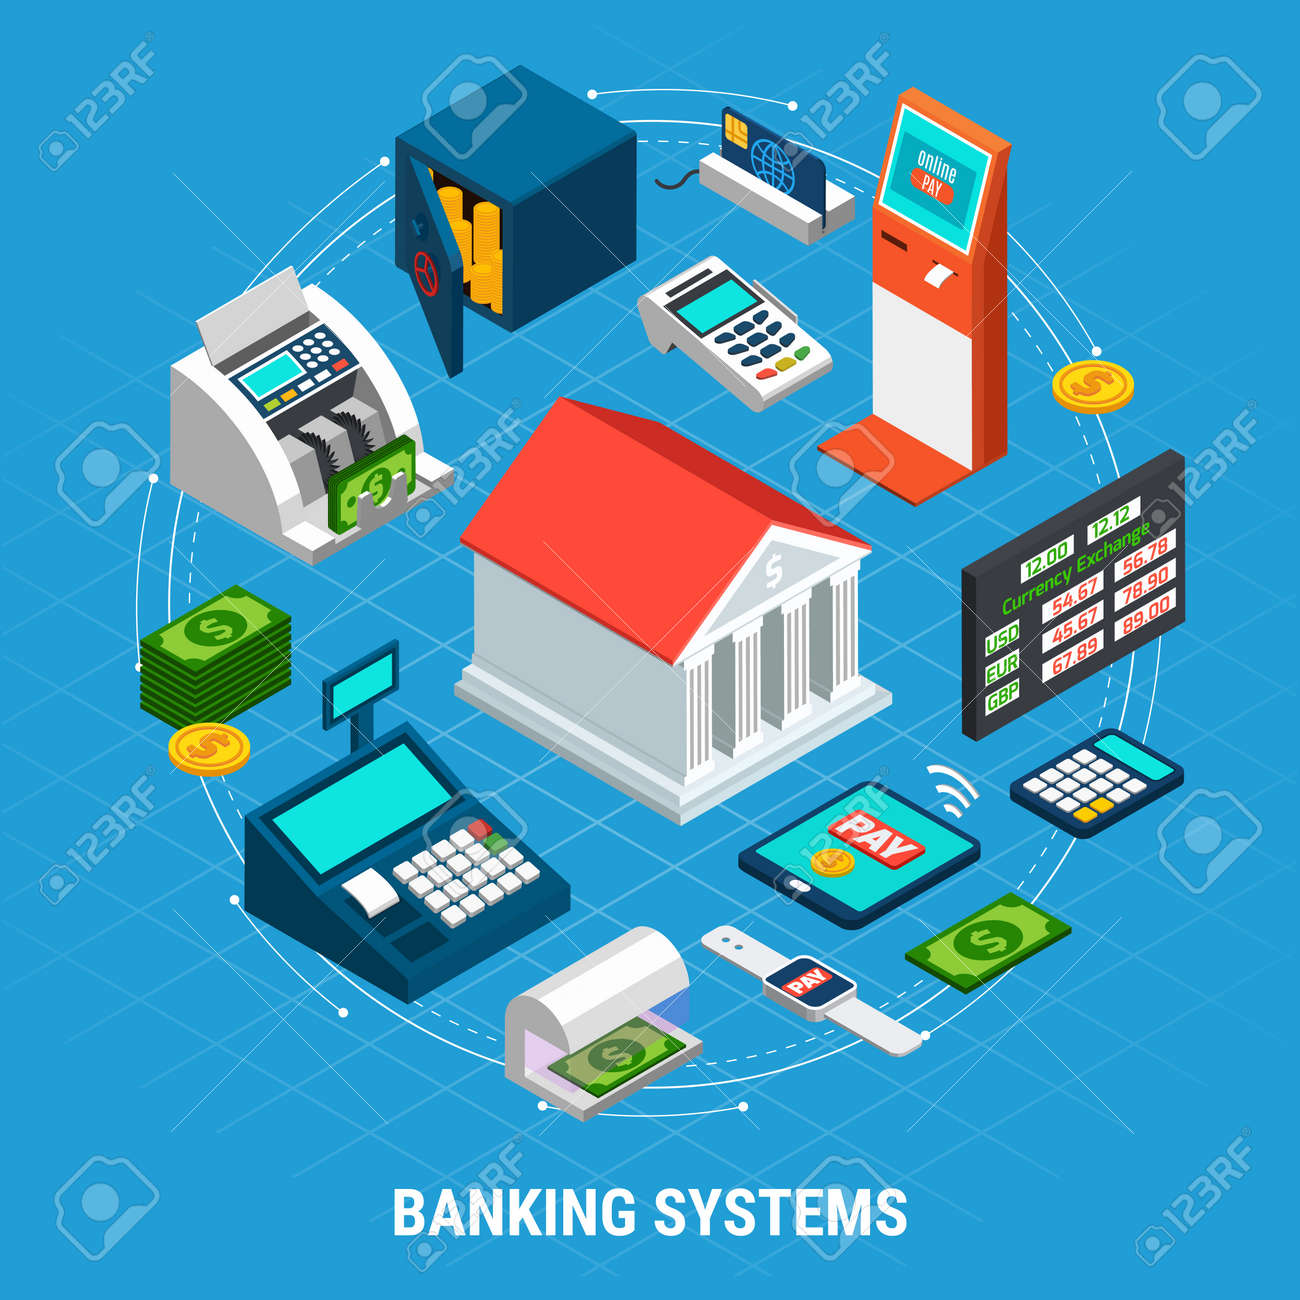 Banking systems isometric round composition on blue background with office building, professional equipment, payment terminals vector illustration - 166048507